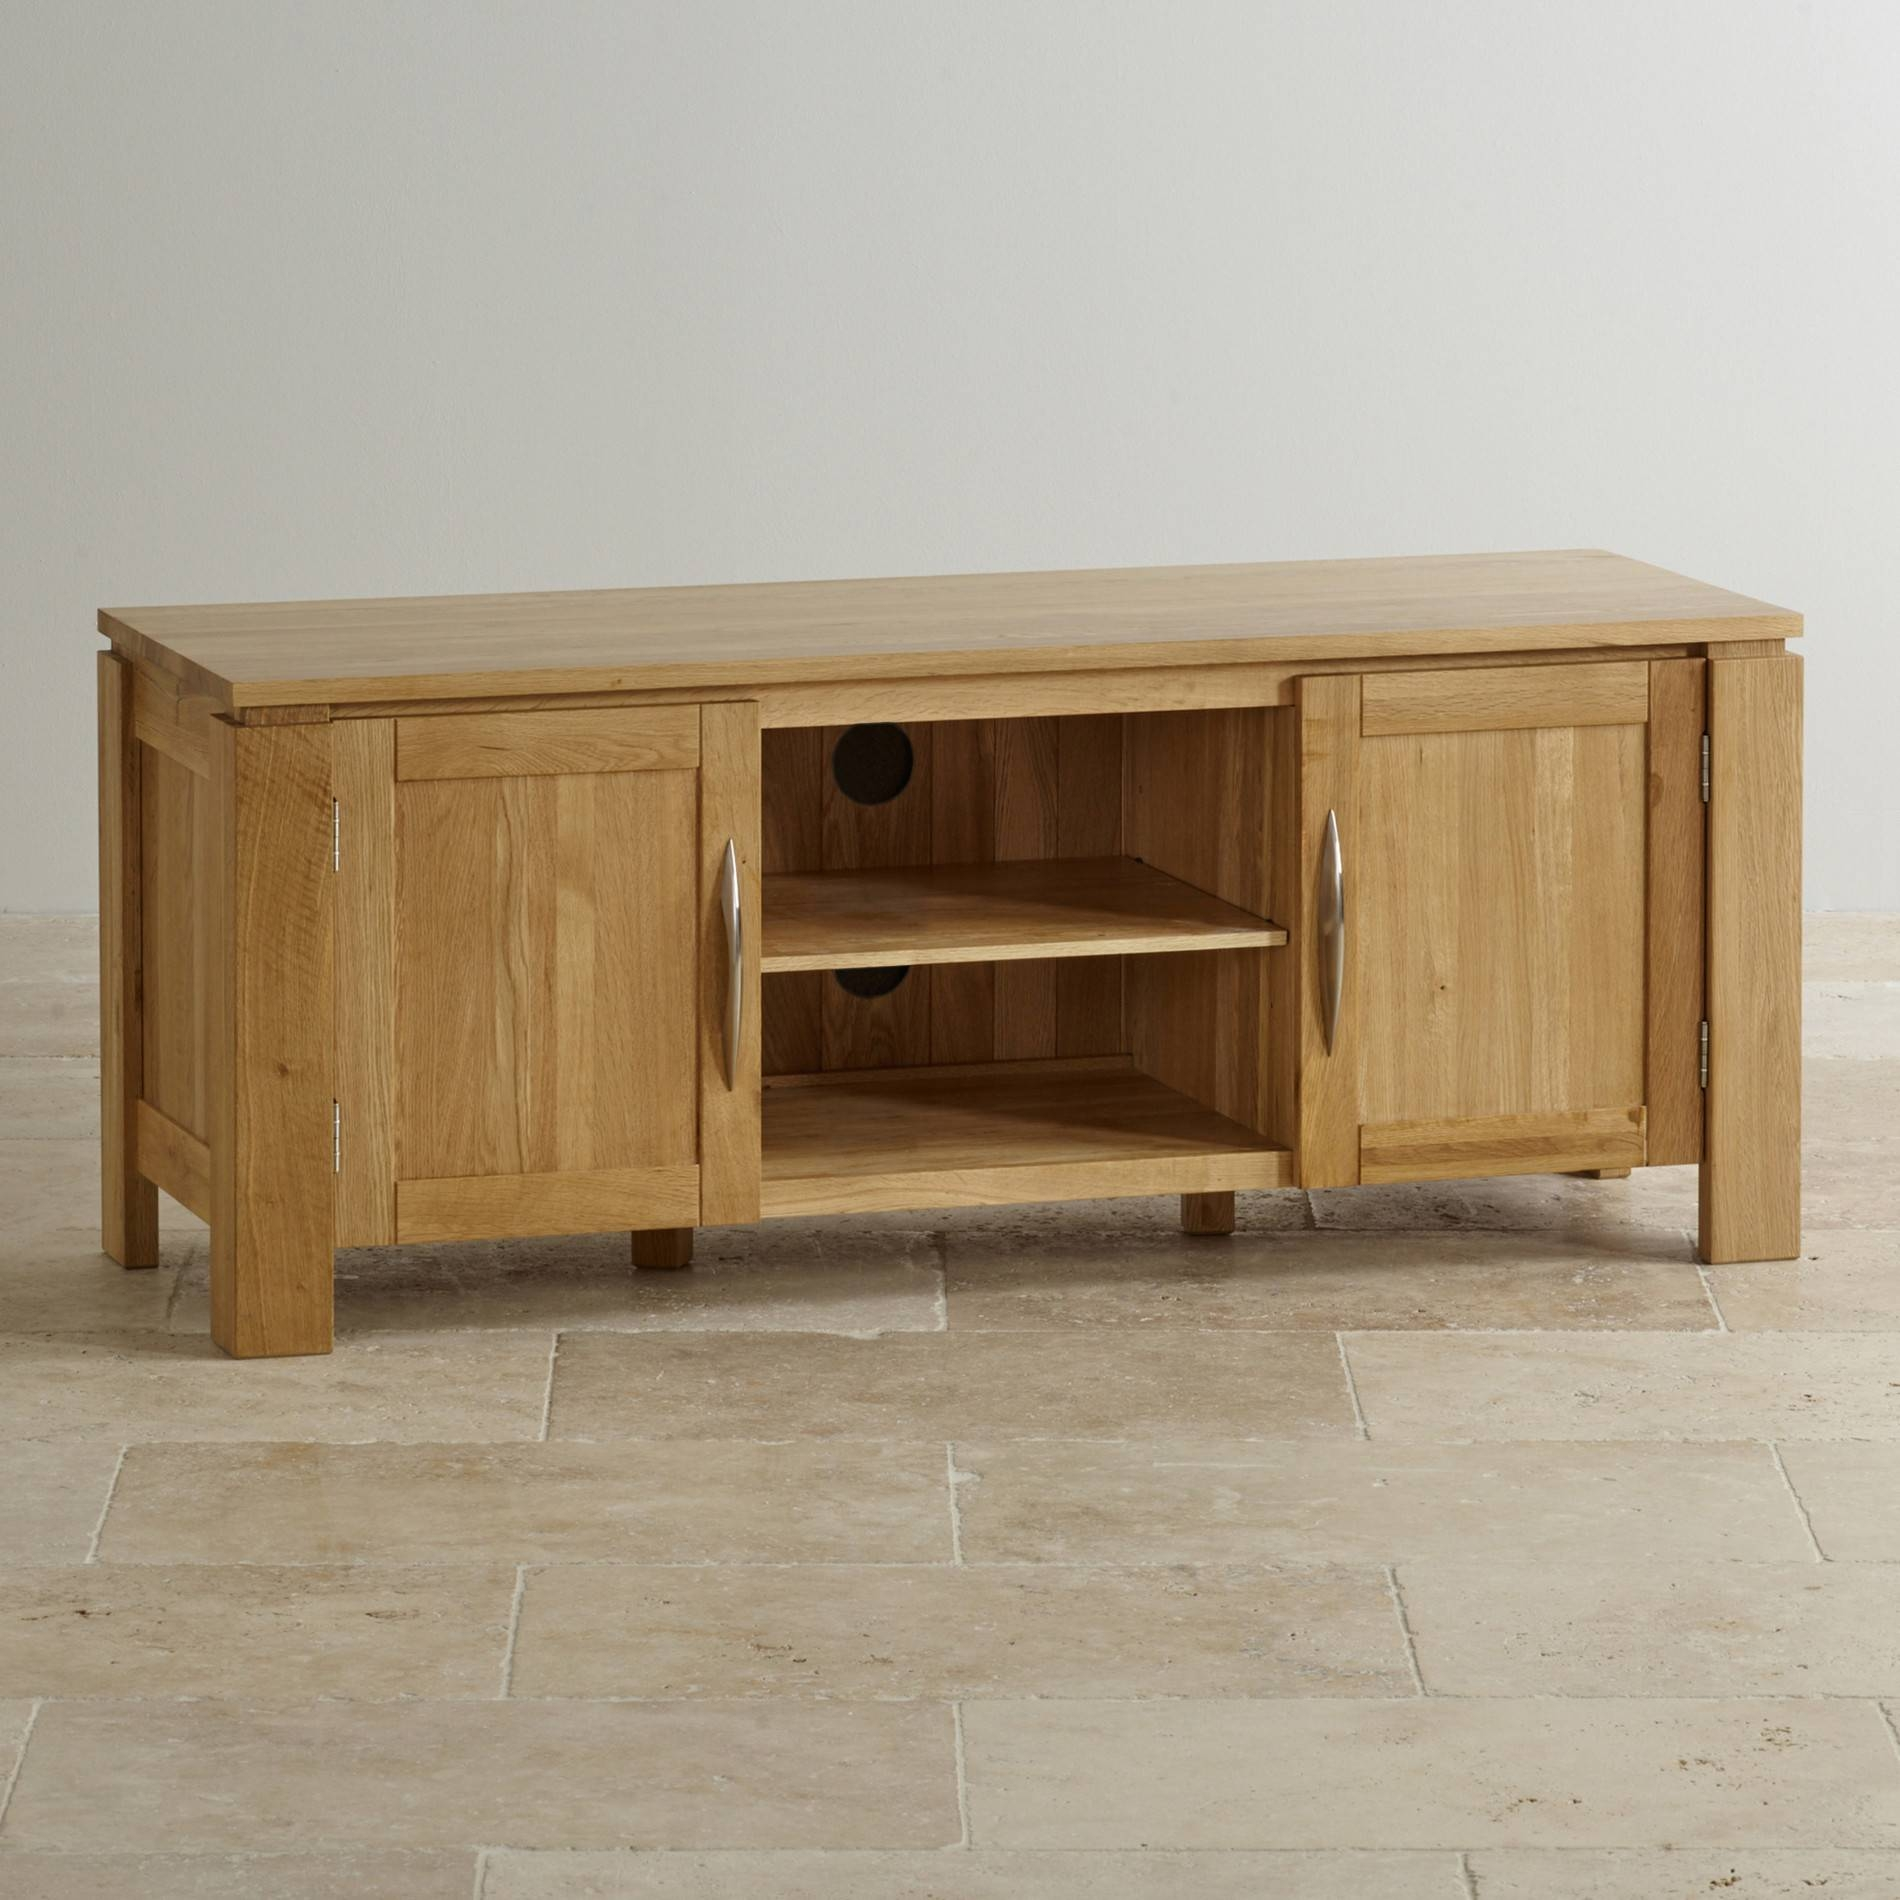 Galway Tv Cabinet In Natural Solid Oak | Oak Furniture Land In Solid Oak Tv Cabinets (View 6 of 15)